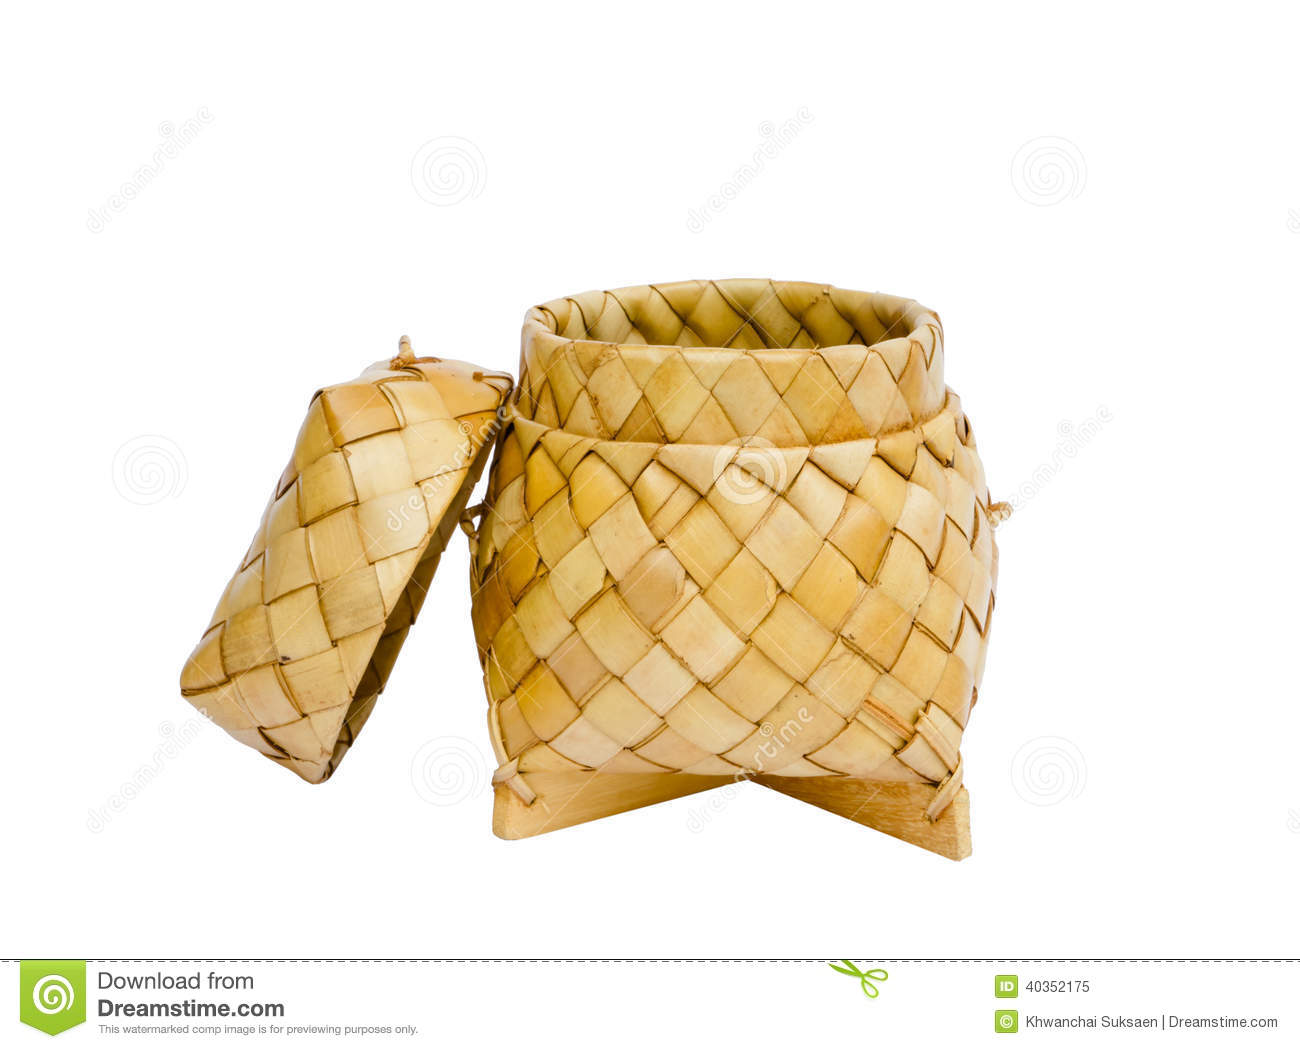 Basket Weaving With Leaves : A basket weave pattern with palm leaves stock photo